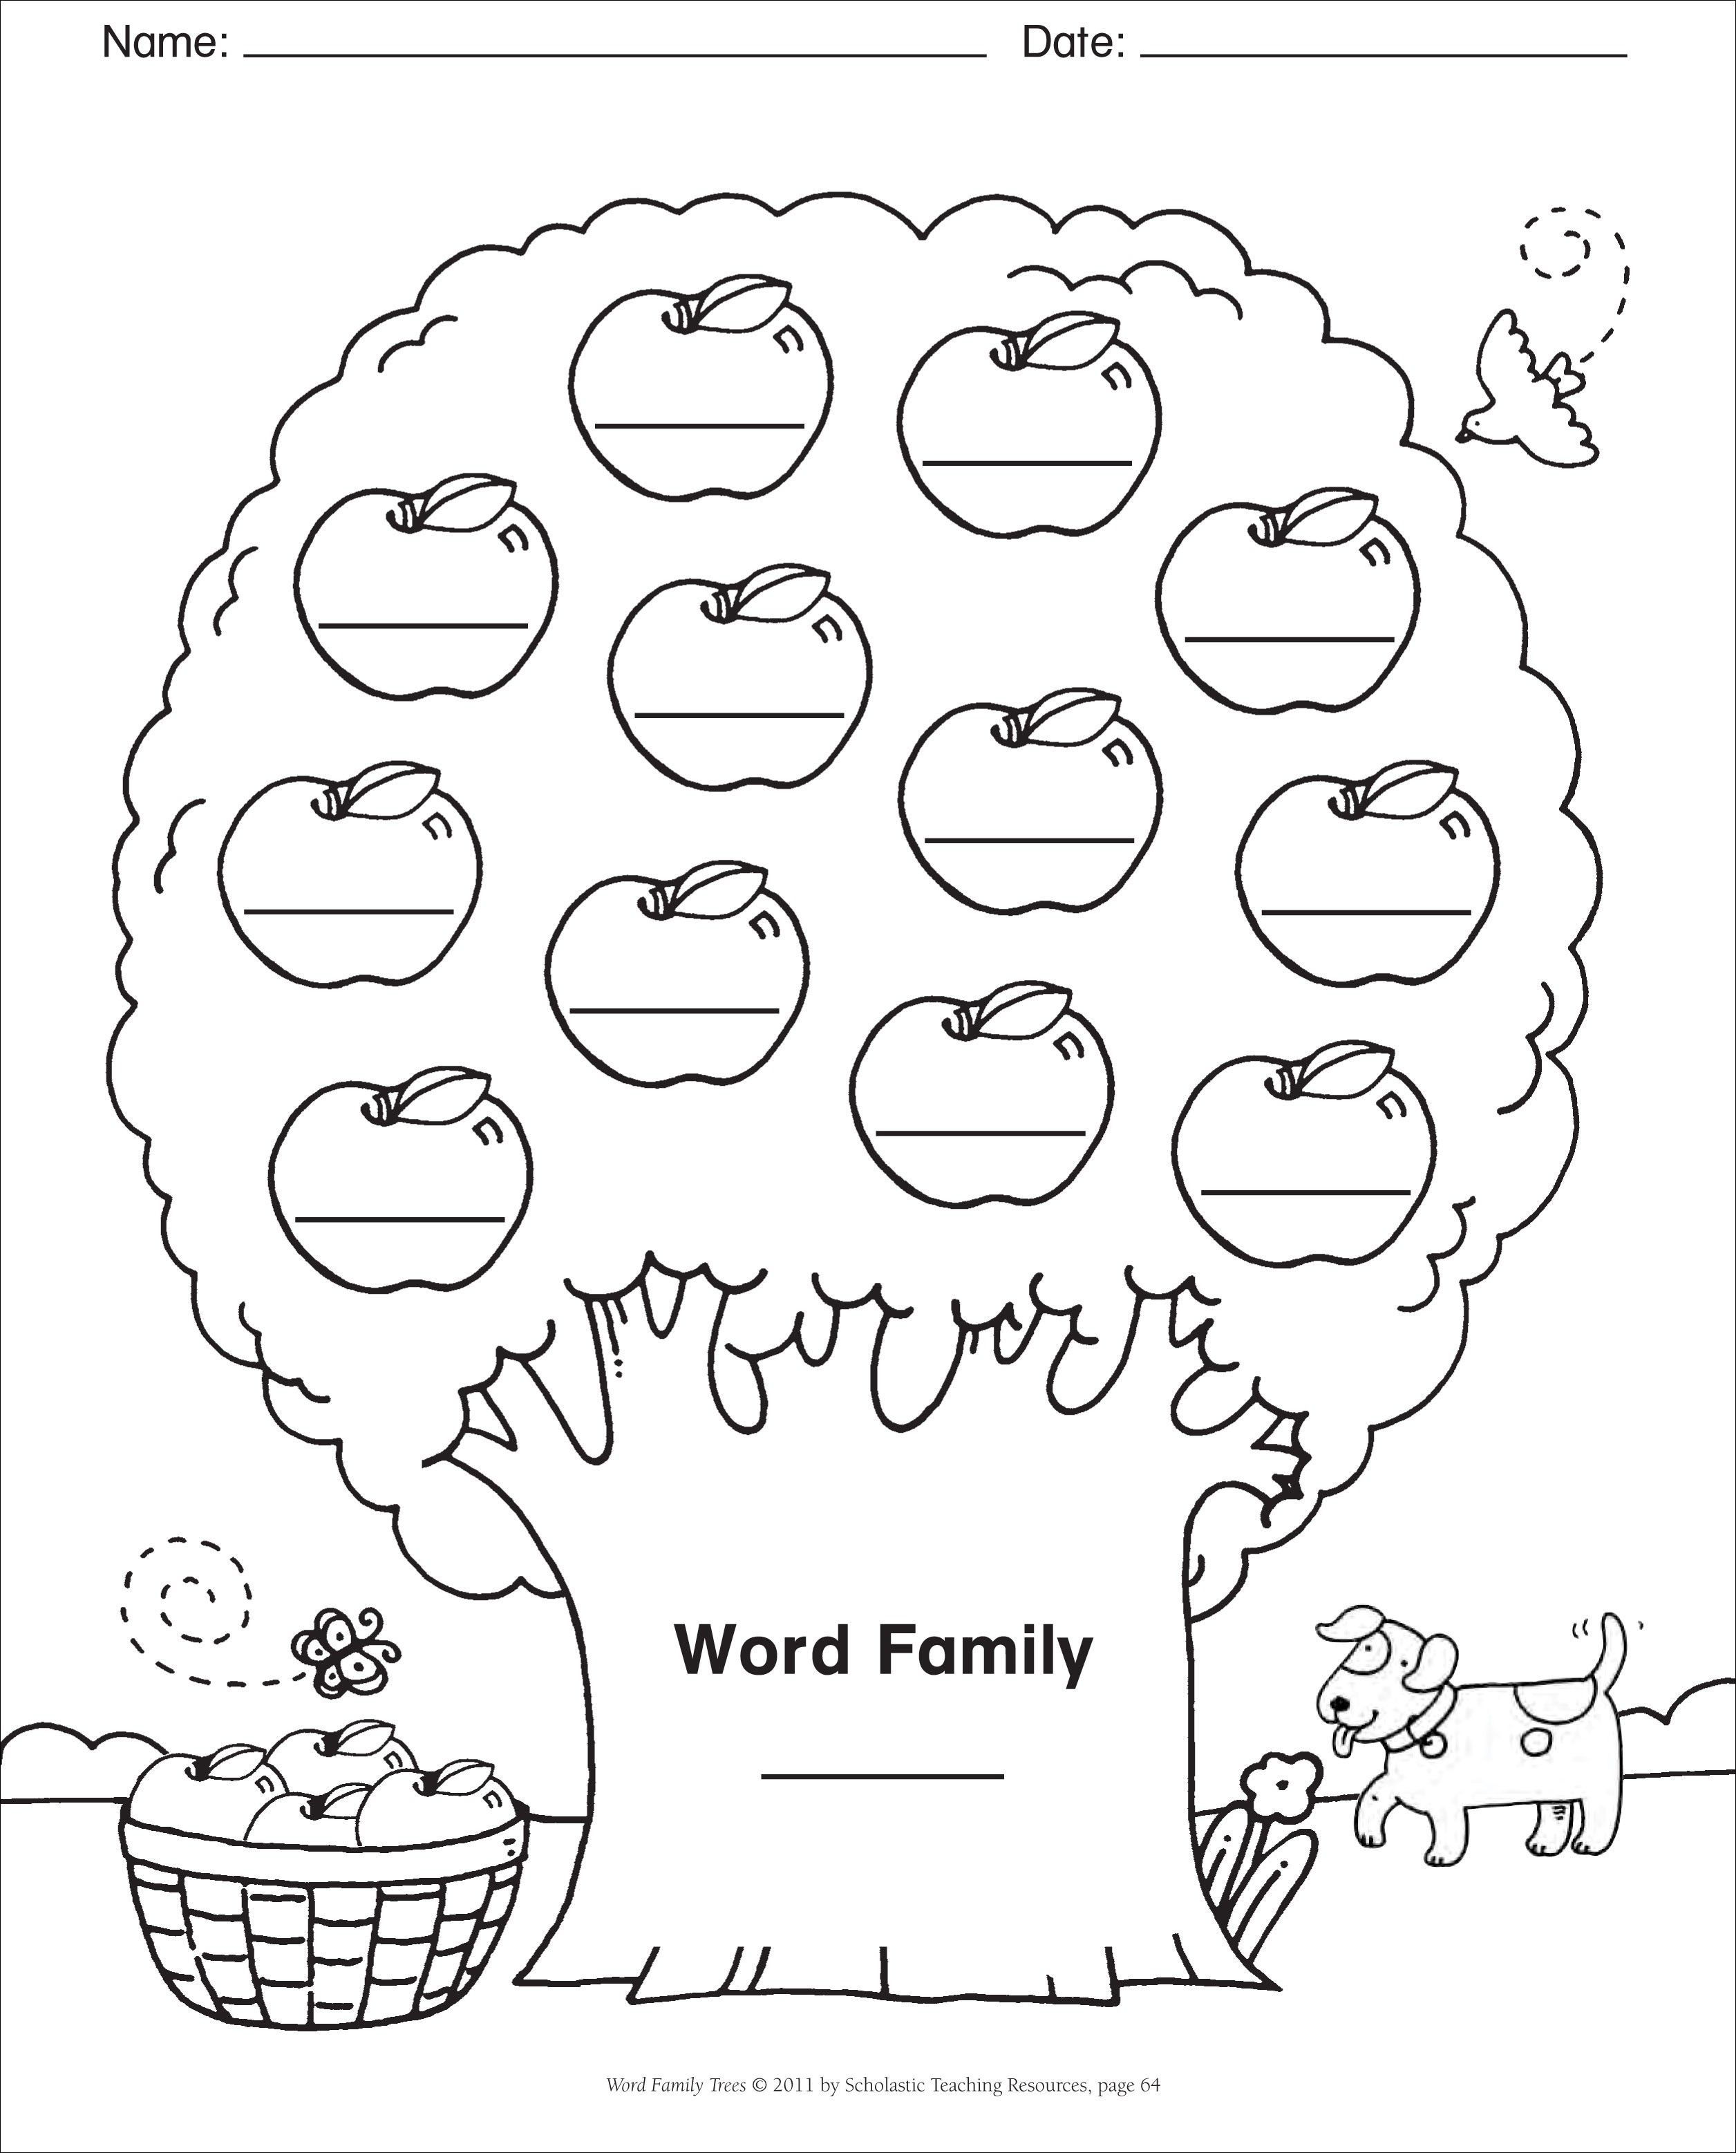 Word Family Template Blank Template Word Family Tree